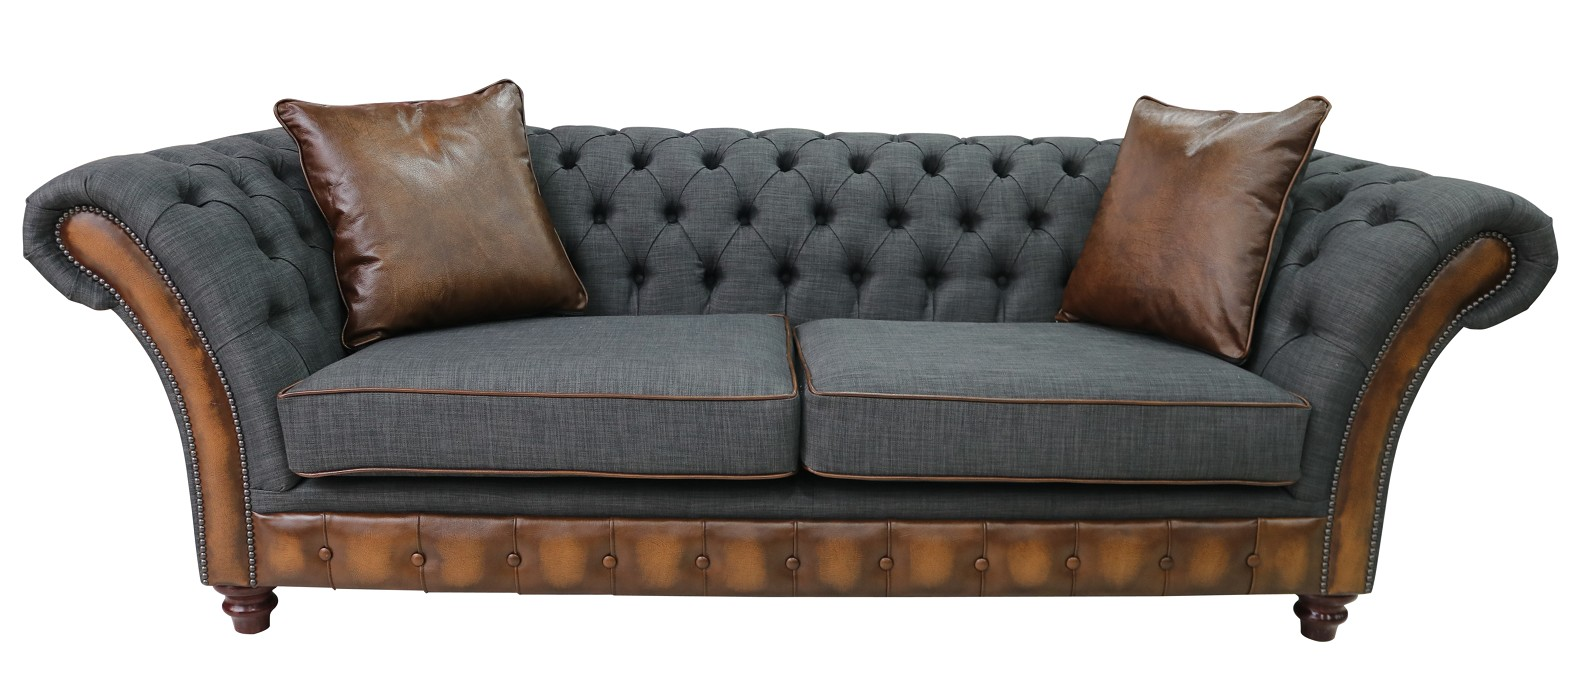 Tan And Grey Chesterfield Jepson 3 Seater Sofa Settee | DesignerSofas4U